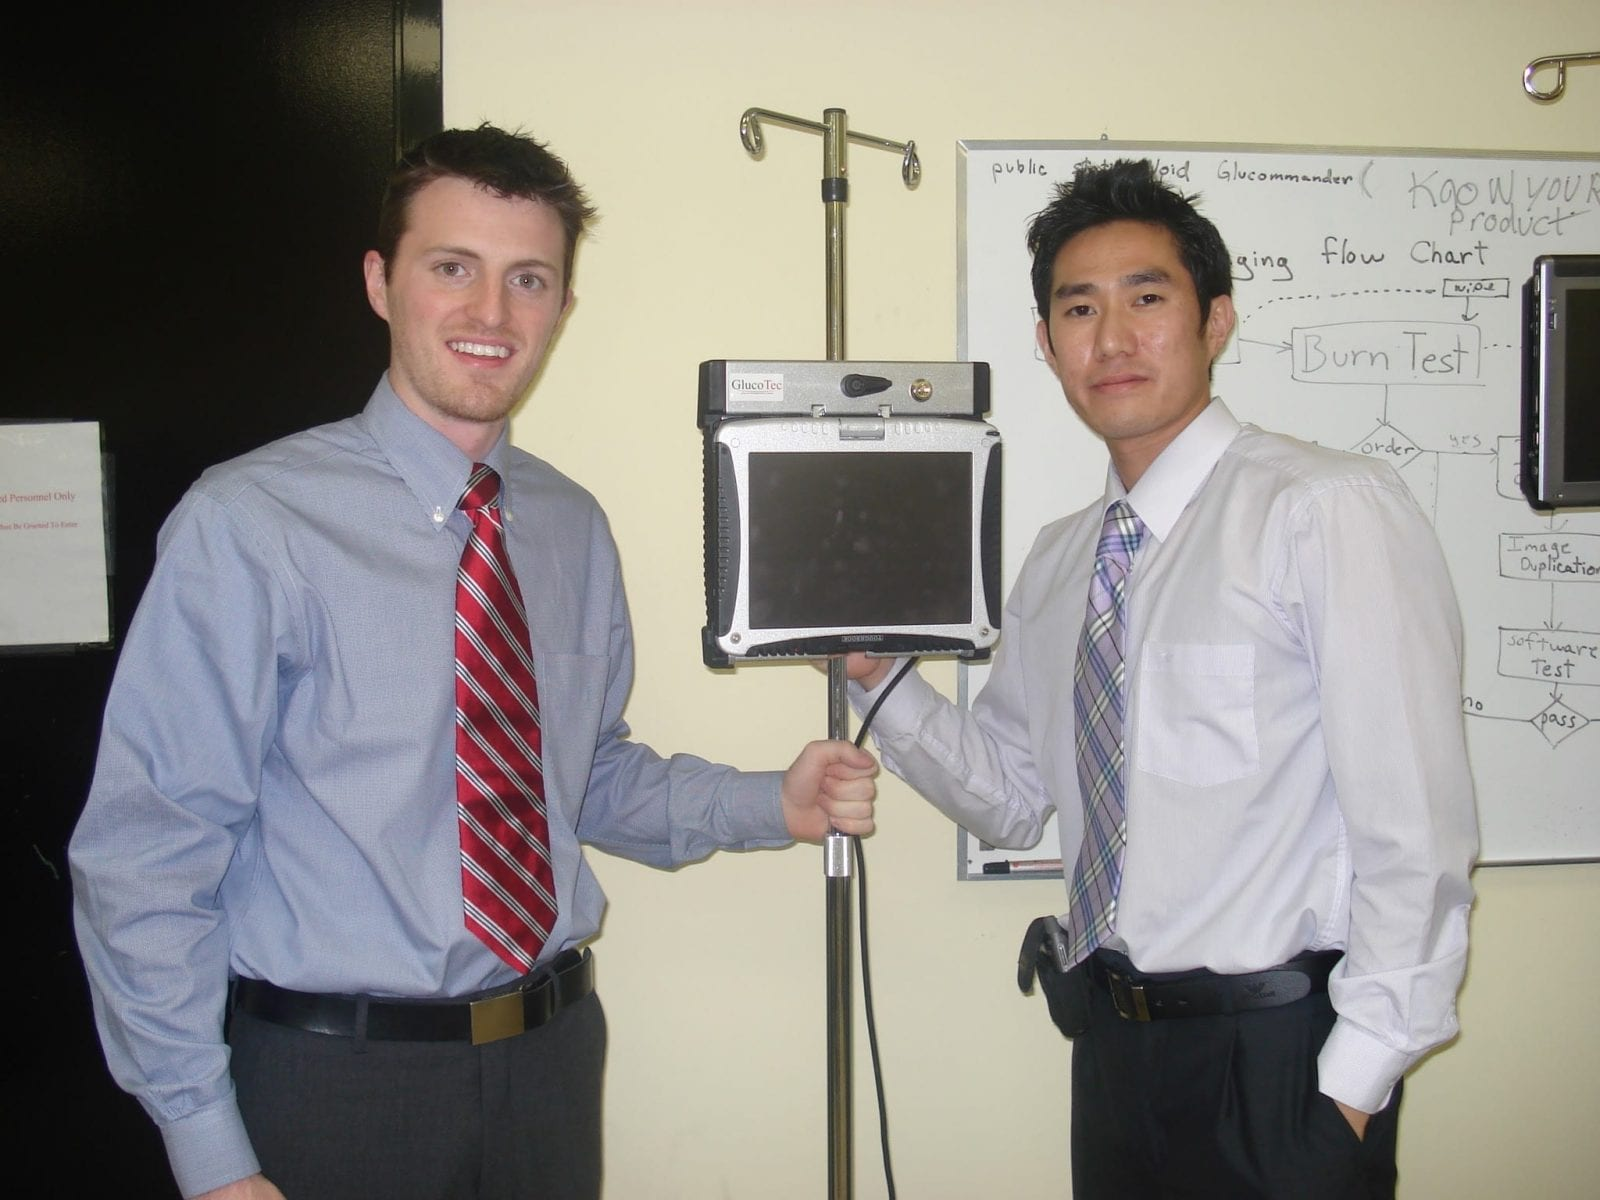 Two men standing next to an IV stand with the Glucommander tablet on the IV pole.